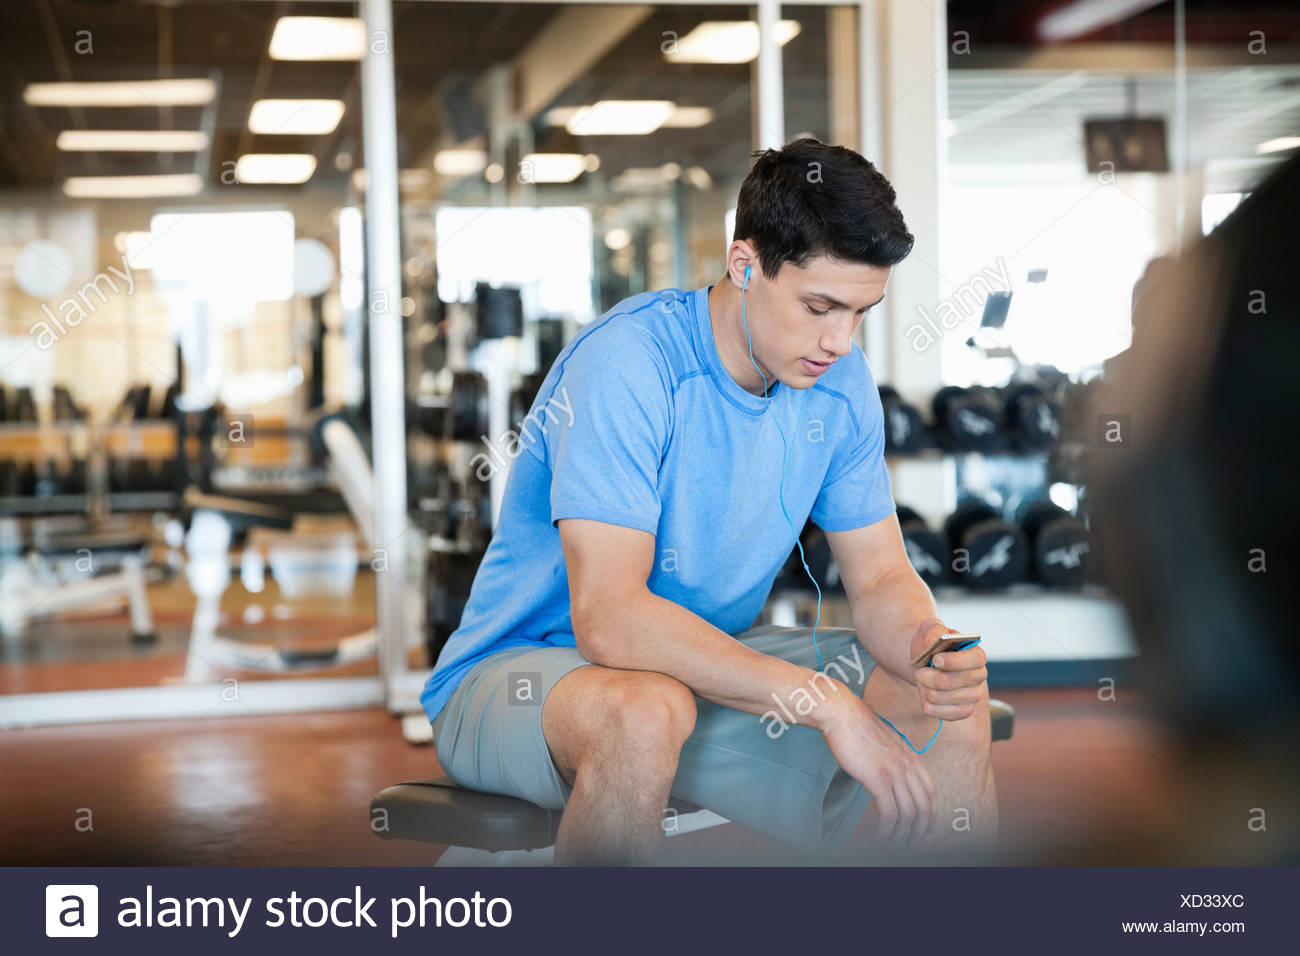 Man listening to music on earbuds at fitness center - Stock Image